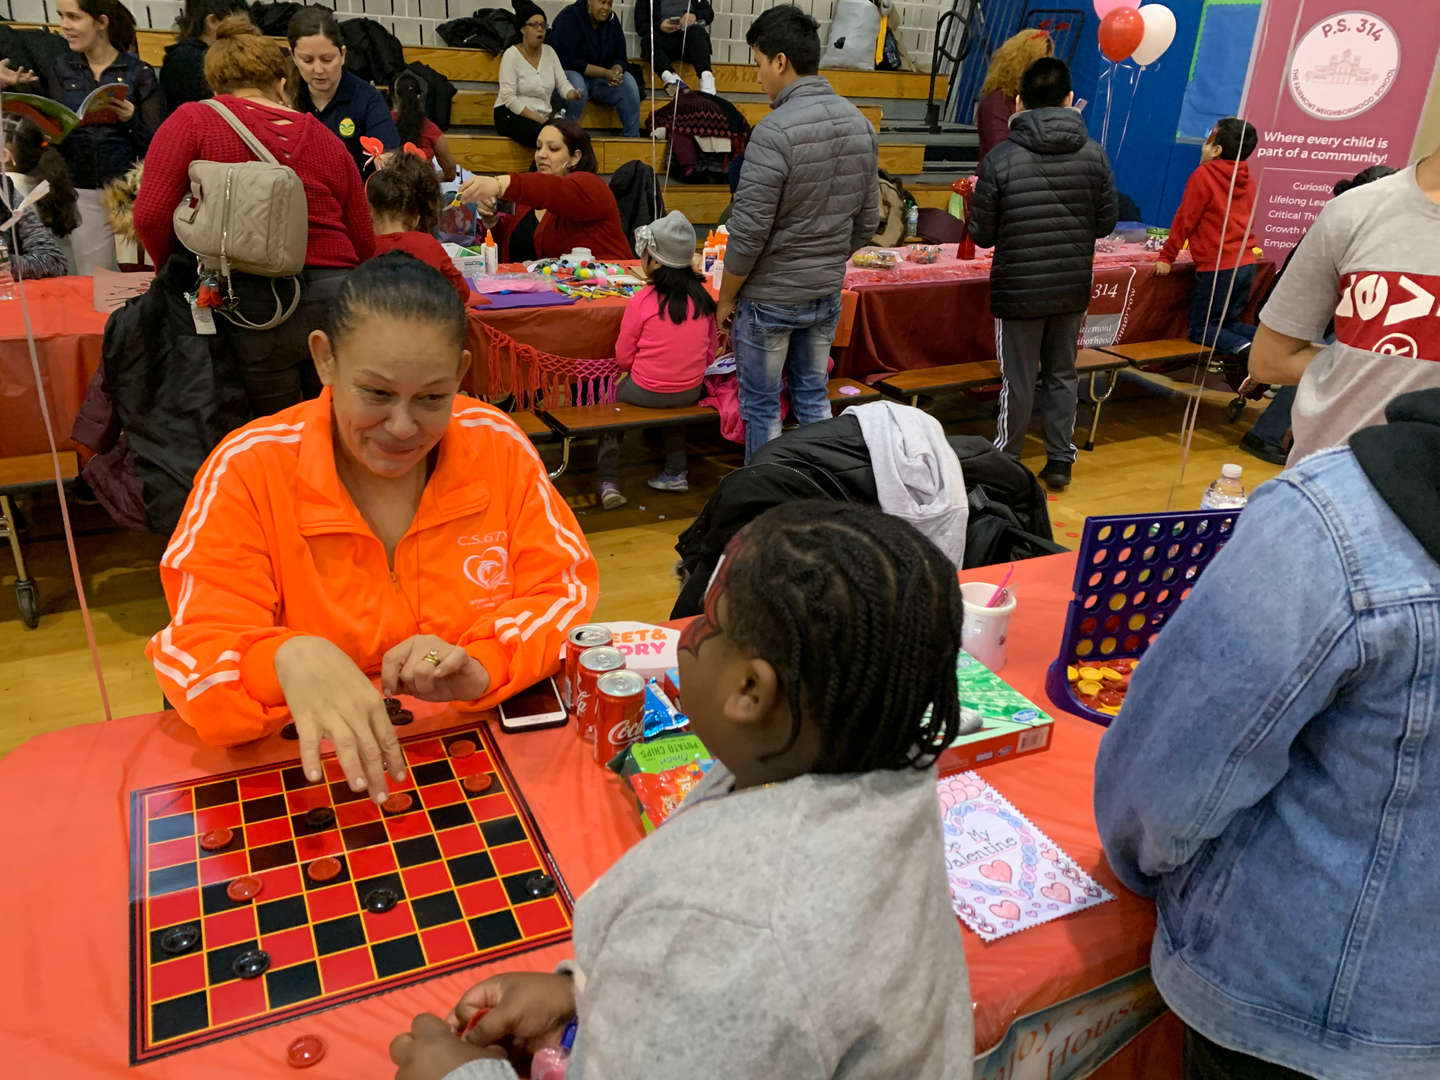 Student playing checkers with a woman